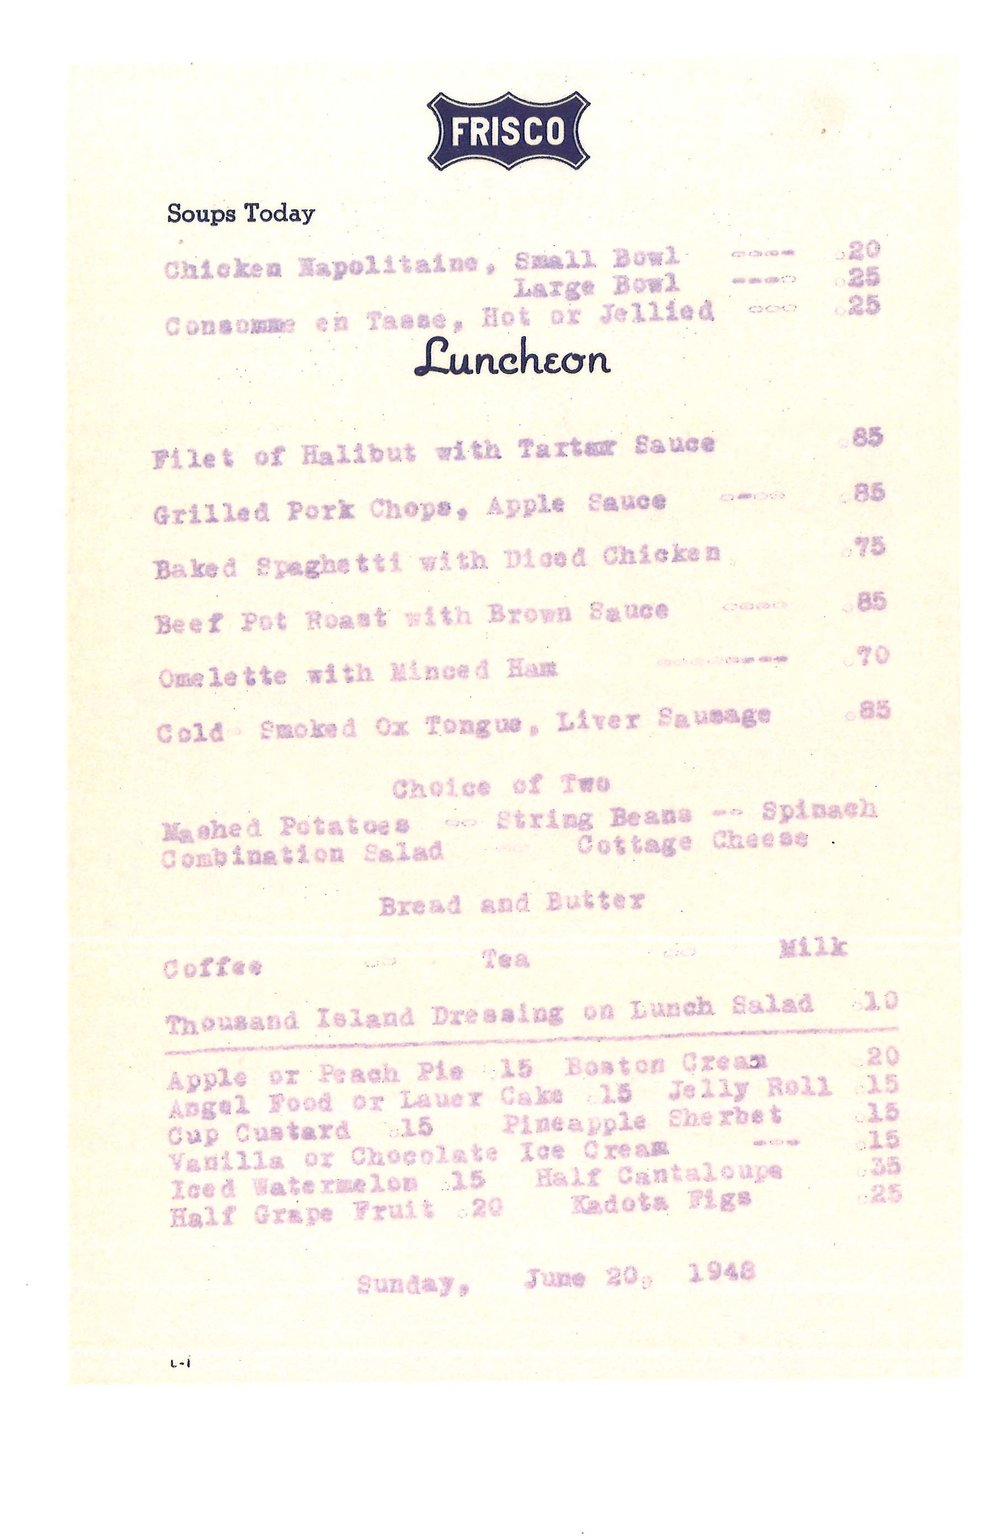 Frisco+1948+-+Lunch+Menu 2.jpg